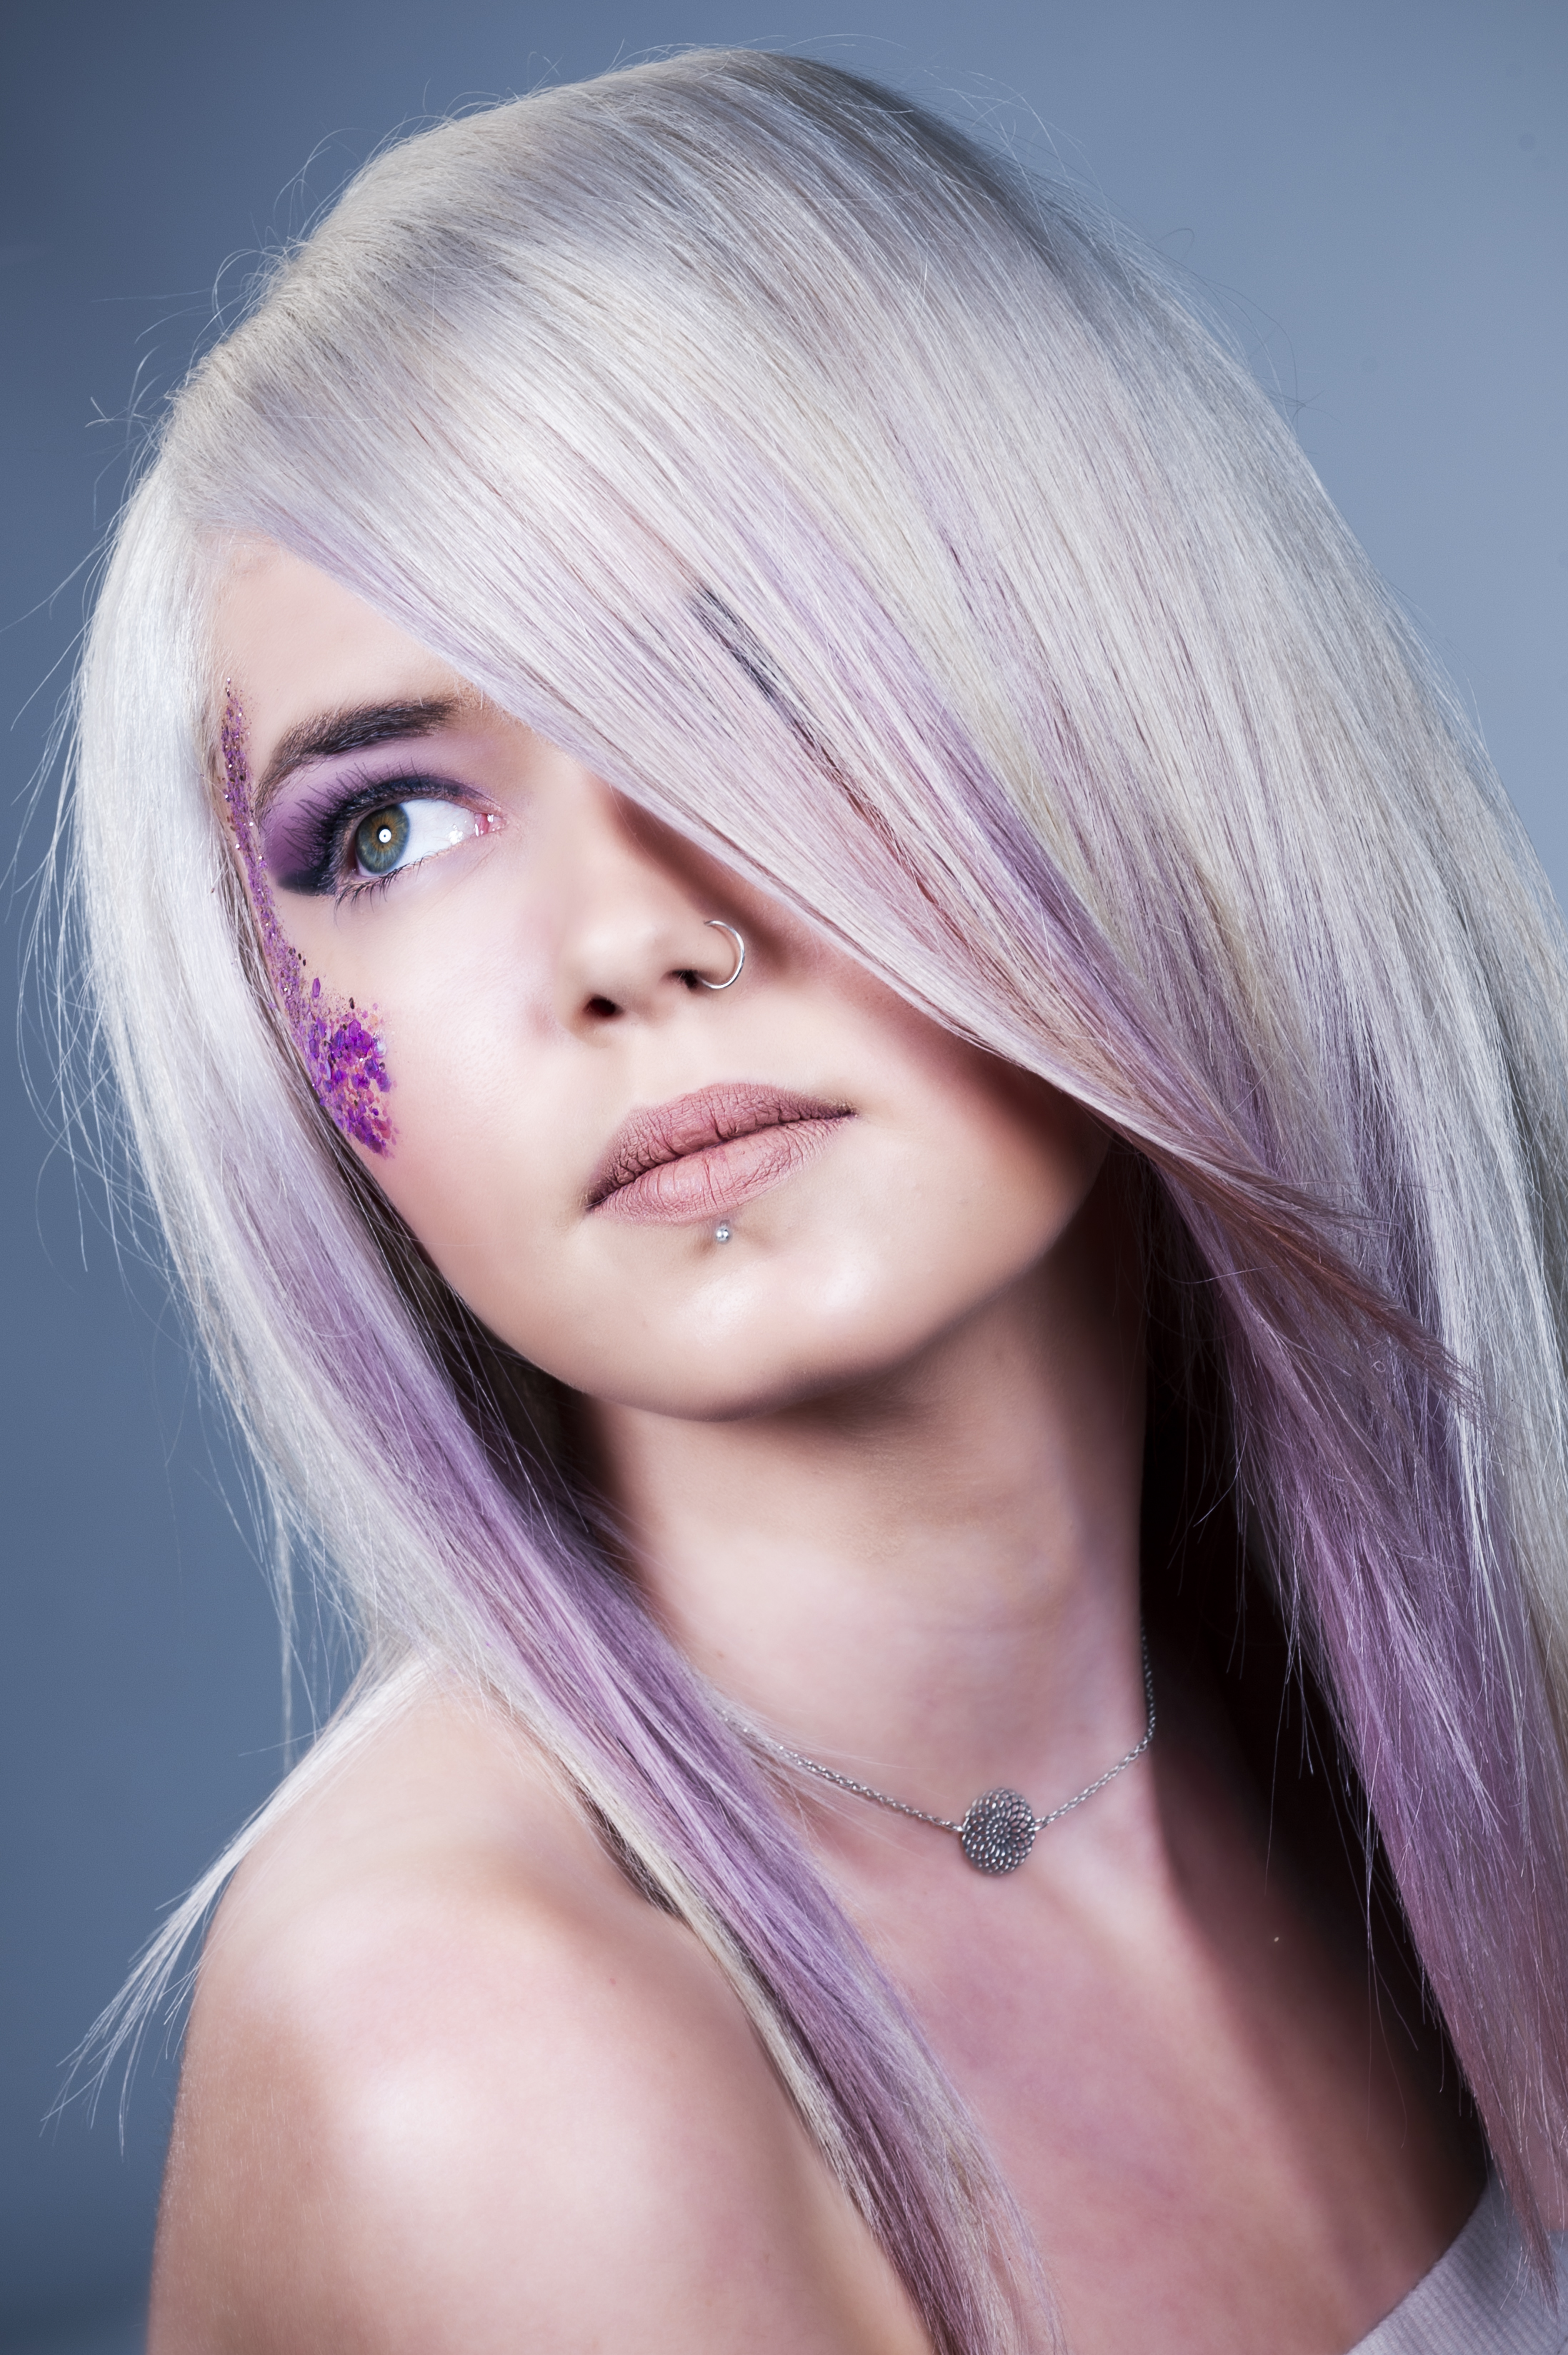 Wella Xposure Competition Entry from Gemma Plant